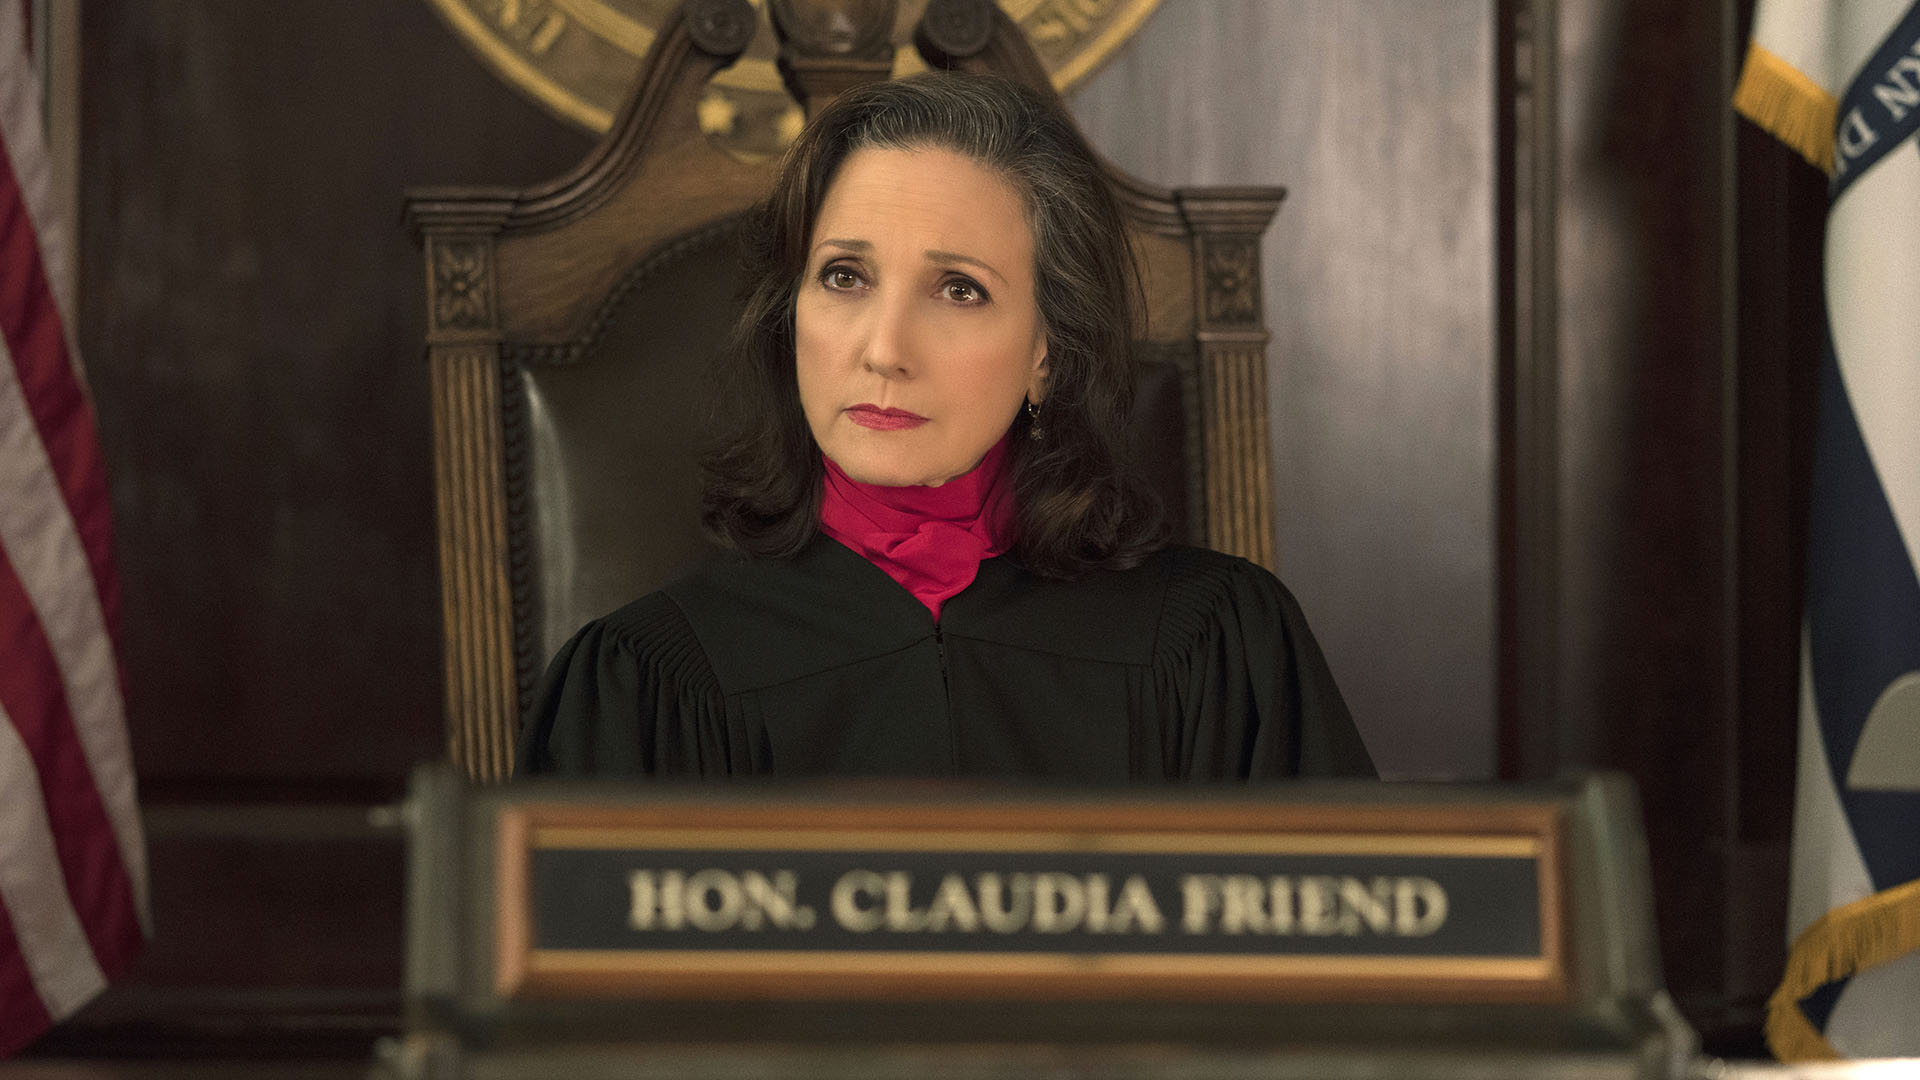 Bebe Neuwirth as Judge Claudia Friend